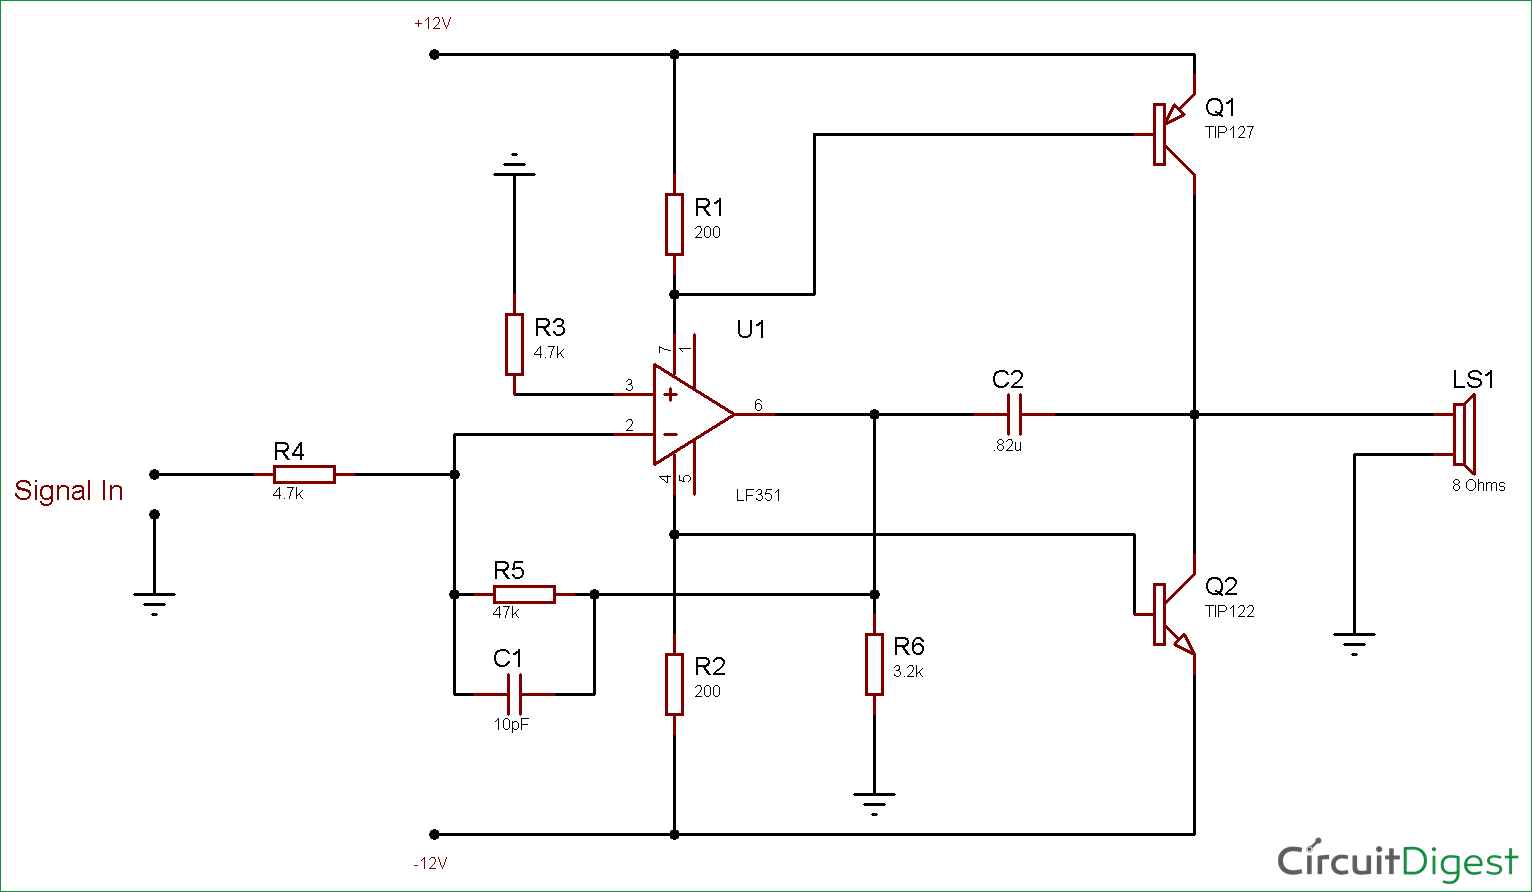 Circuit Diagram for 10 Watt Audio Amplifier using Op-Amp